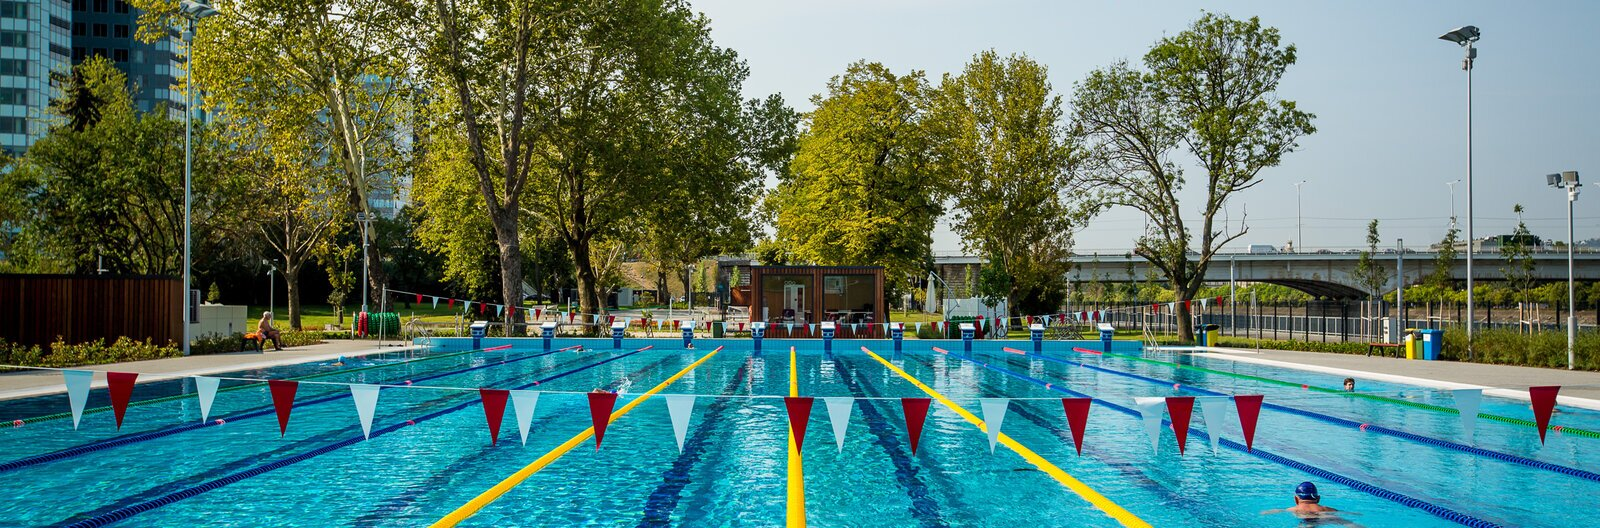 5 great swimming pools close to nature